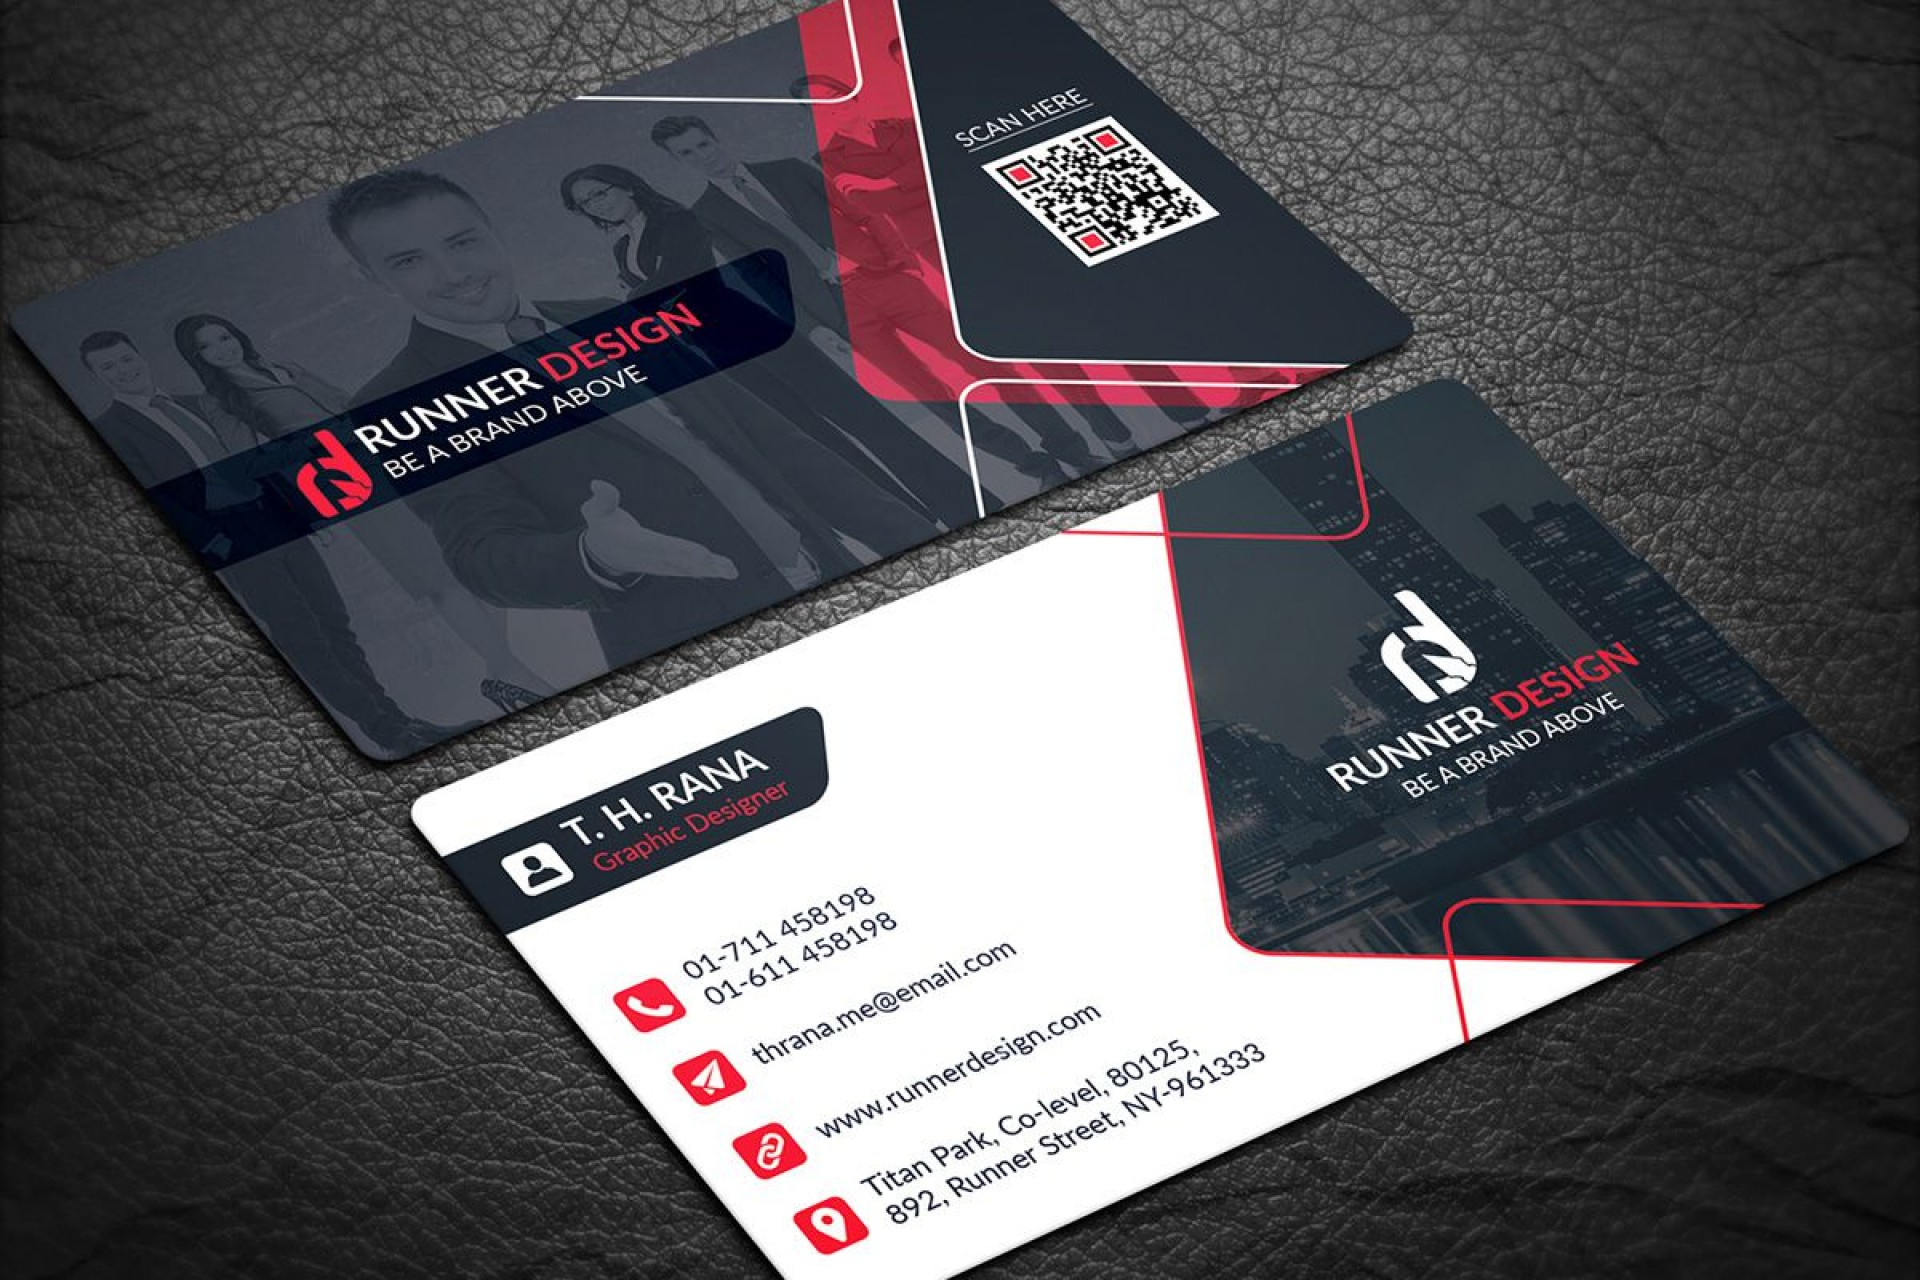 003 Surprising Blank Busines Card Template Psd Free Download Sample  Photoshop1920